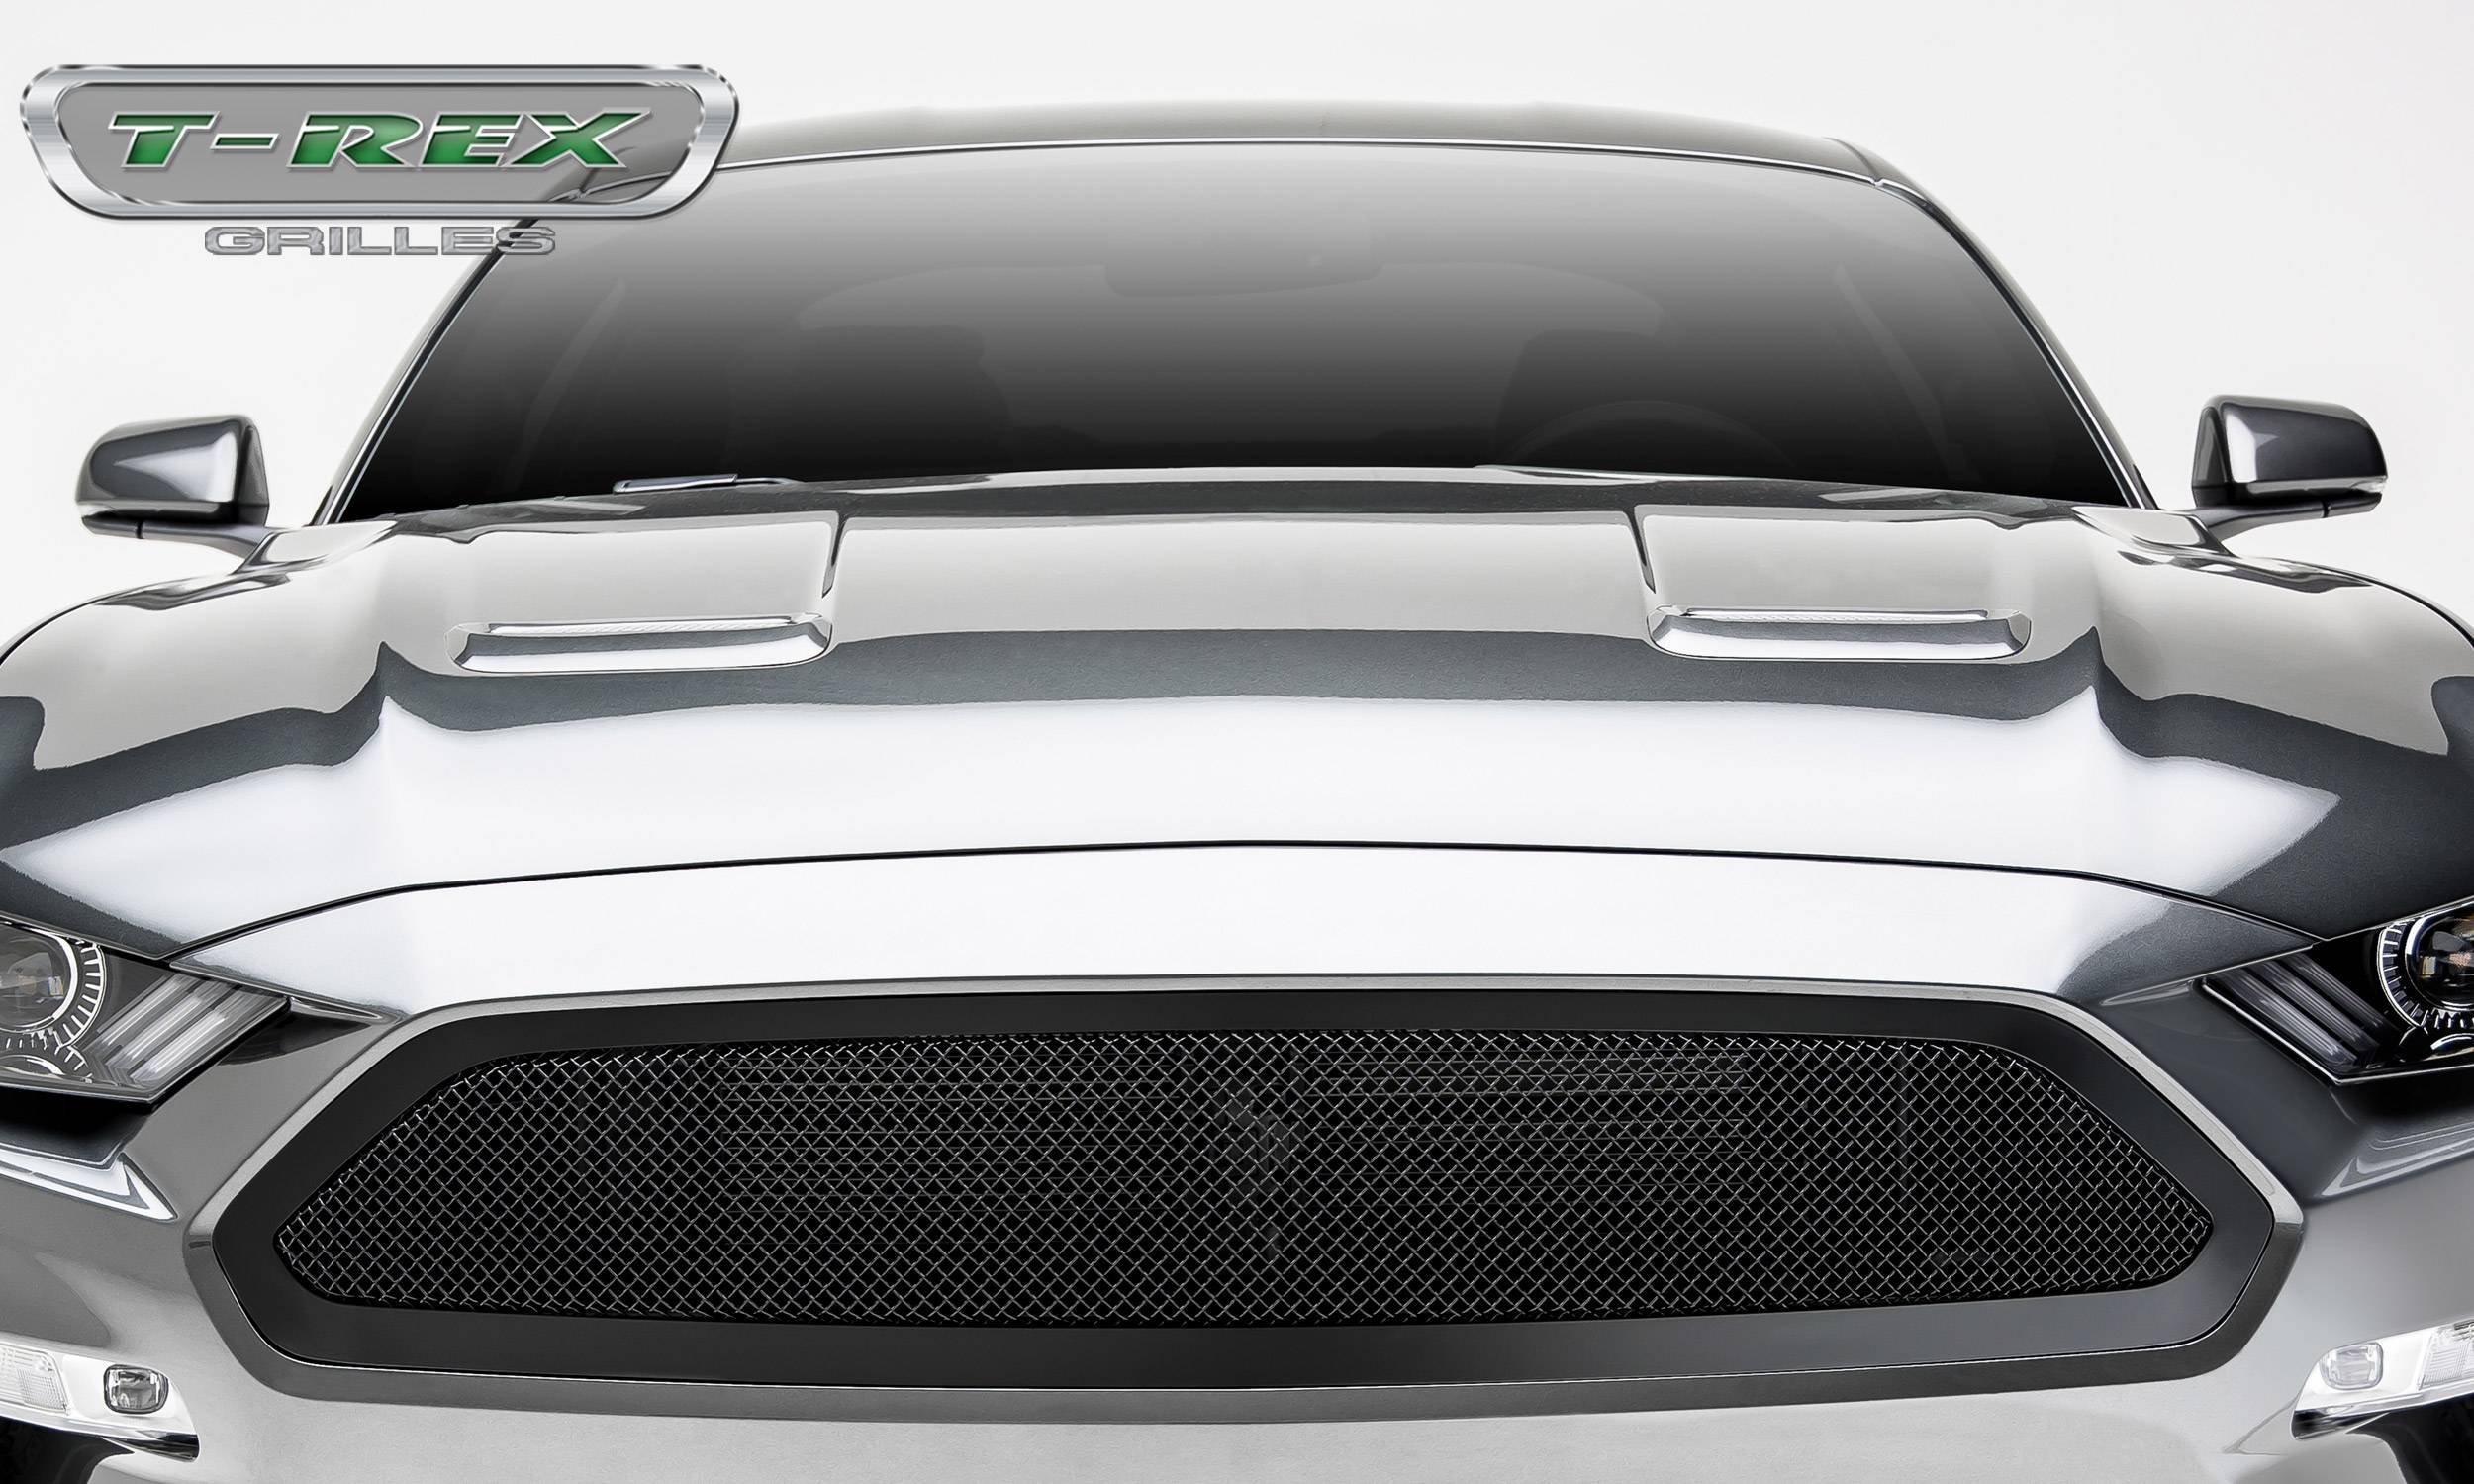 2018 Mustang GT - Upper Class Series - Main Grille, Insert Black Powder Coated Finish  #51550